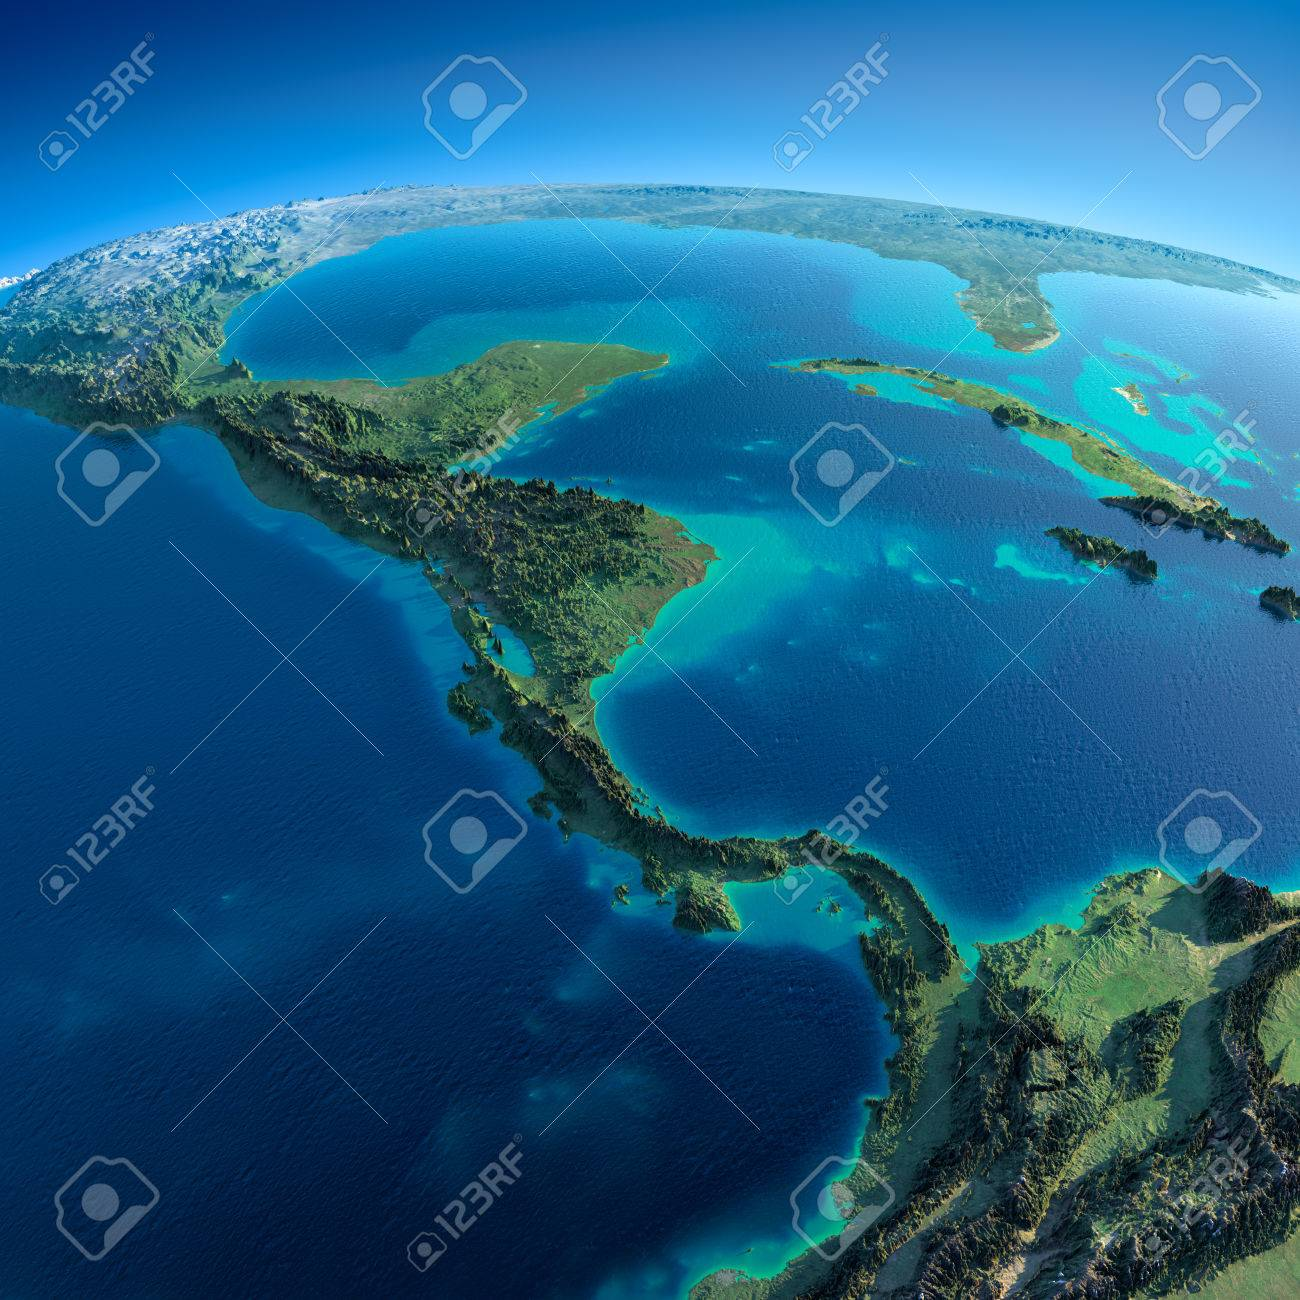 Highly detailed planet Earth in the morning Exaggerated precise relief lit morning sun Detailed Earth The countries of Central America A - 26509290